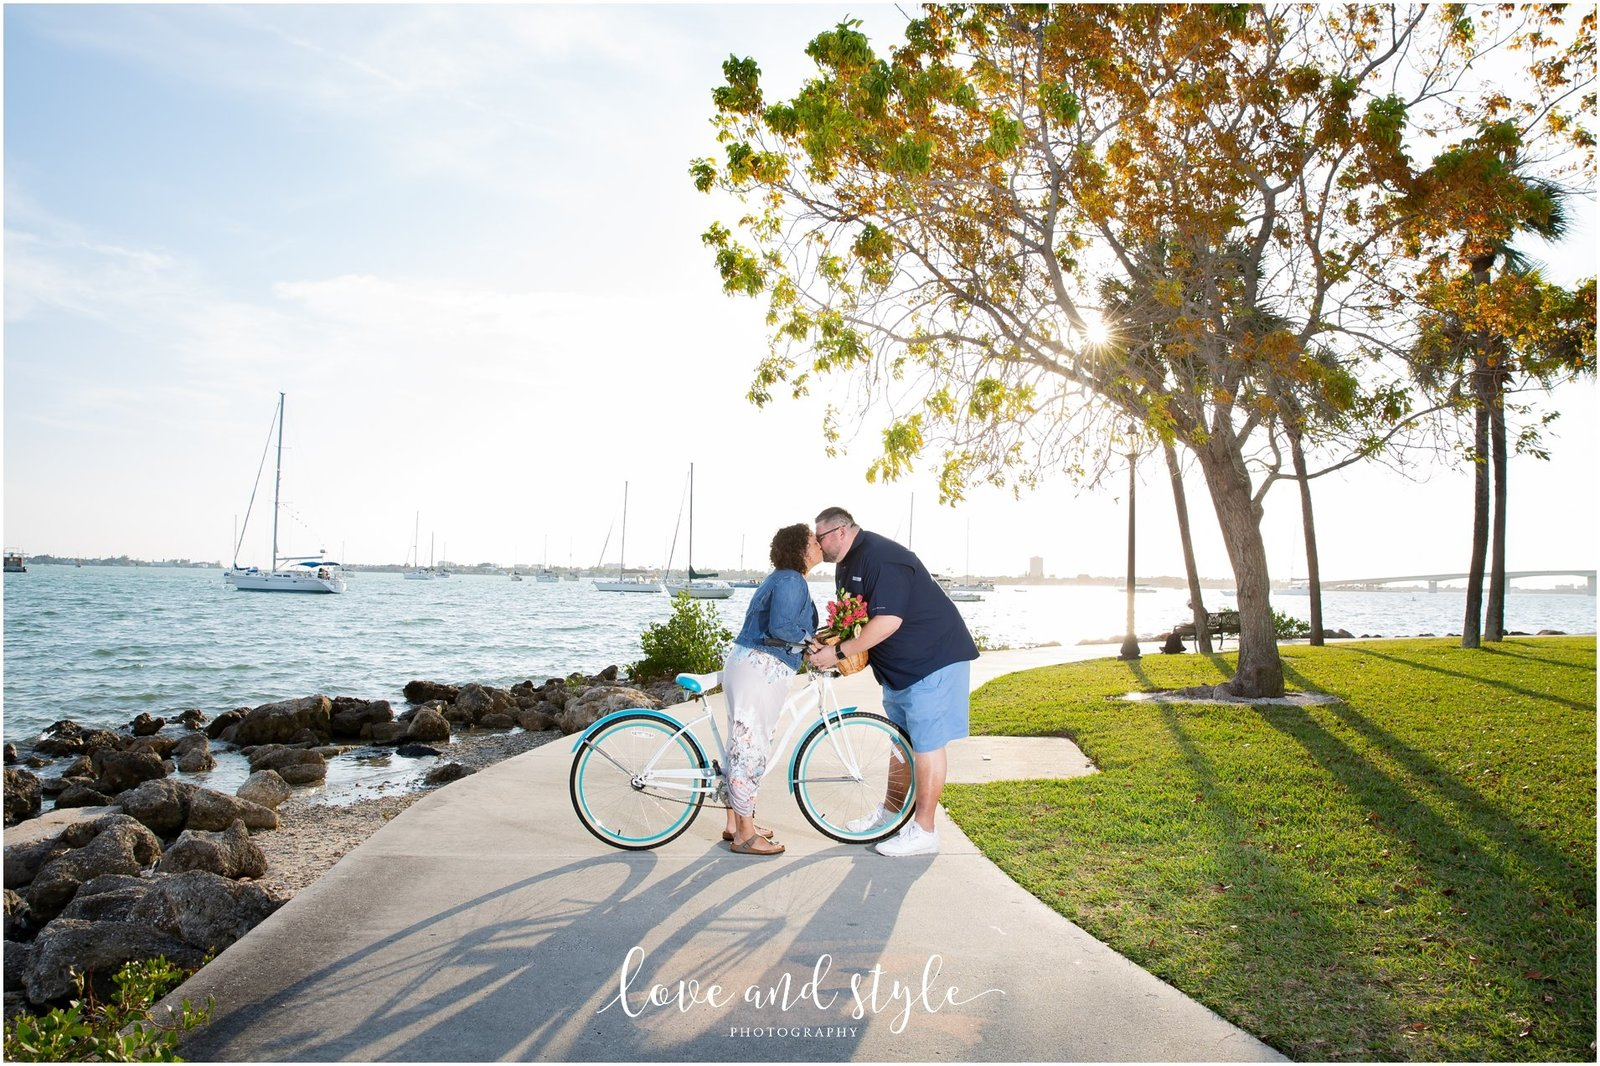 Engagement Photography at Bayfront Park, Sarasota kissing with a bike